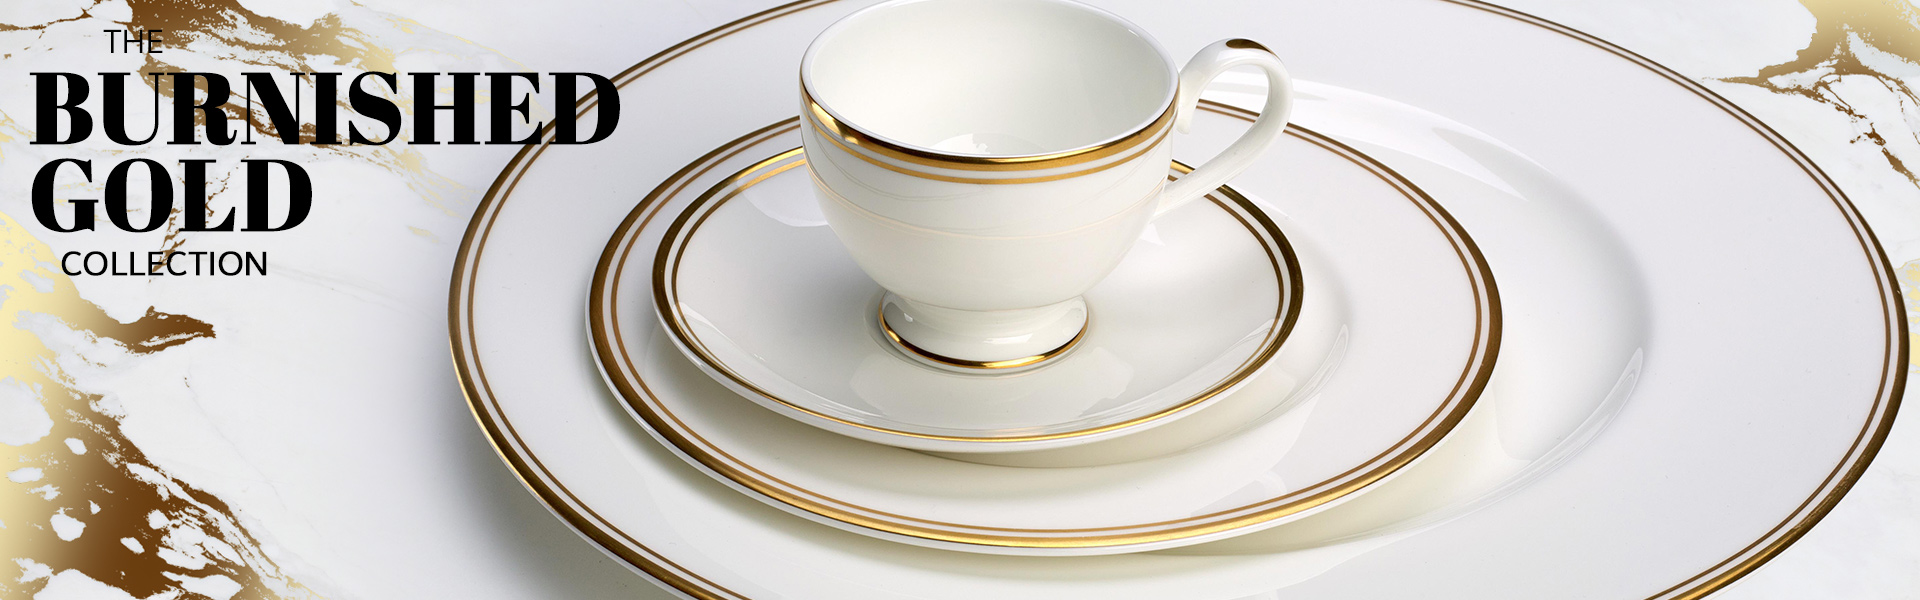 stack of bone china plates with a tea cup and saucer